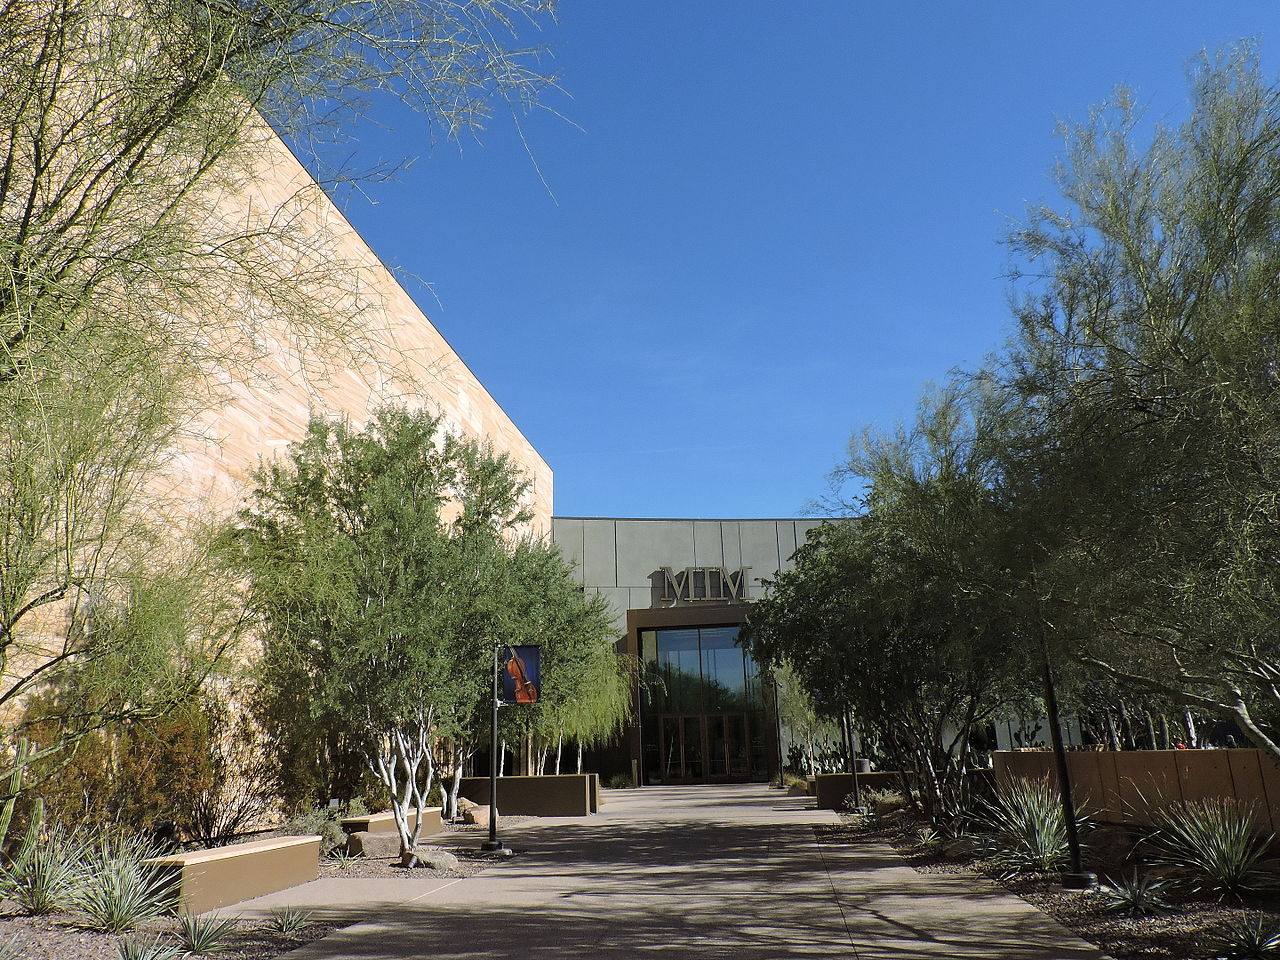 Musical Instrument Museum - Must-Visit Museum in Arizona